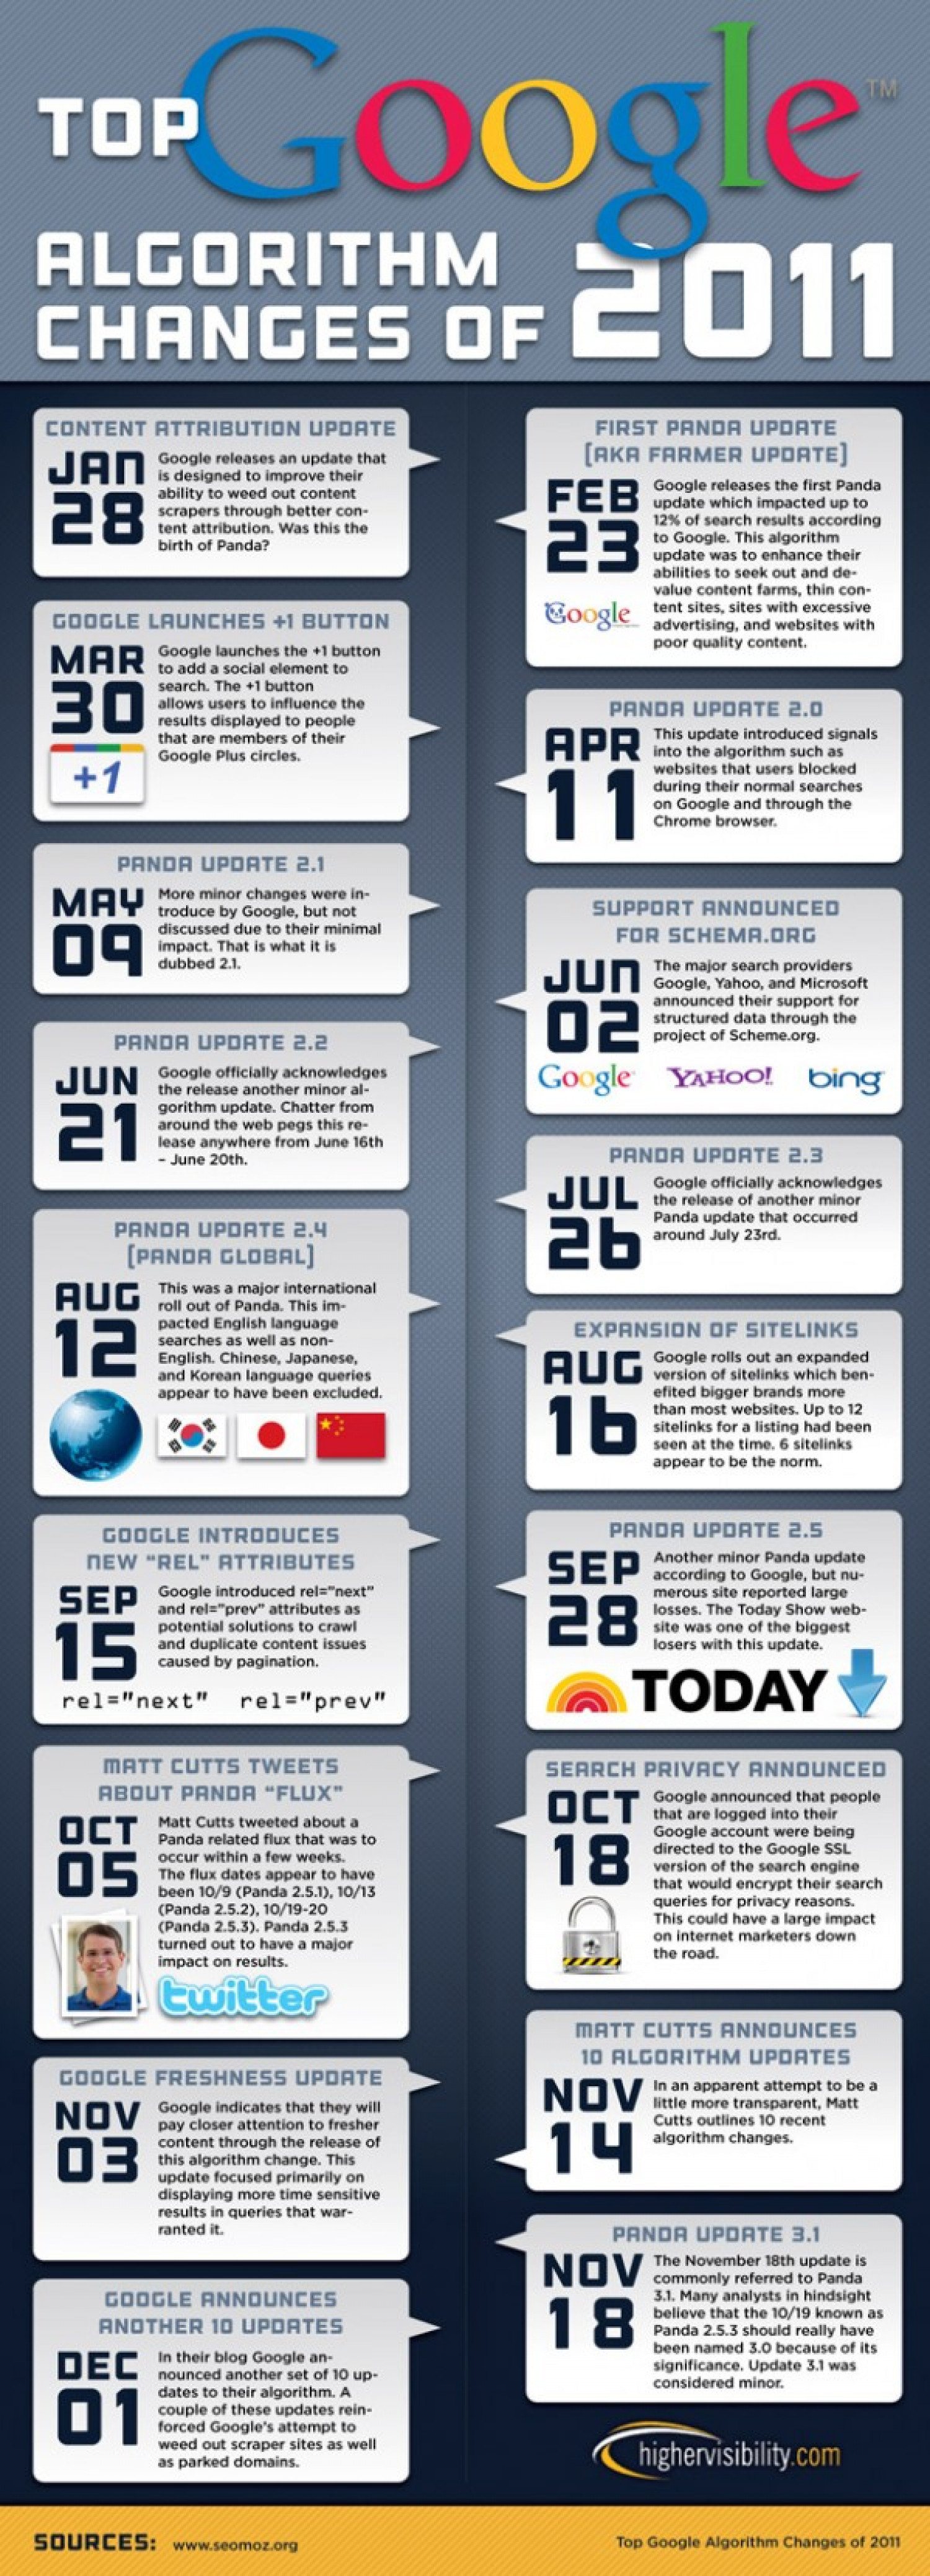 Top Google Changes of 2011 Infographic